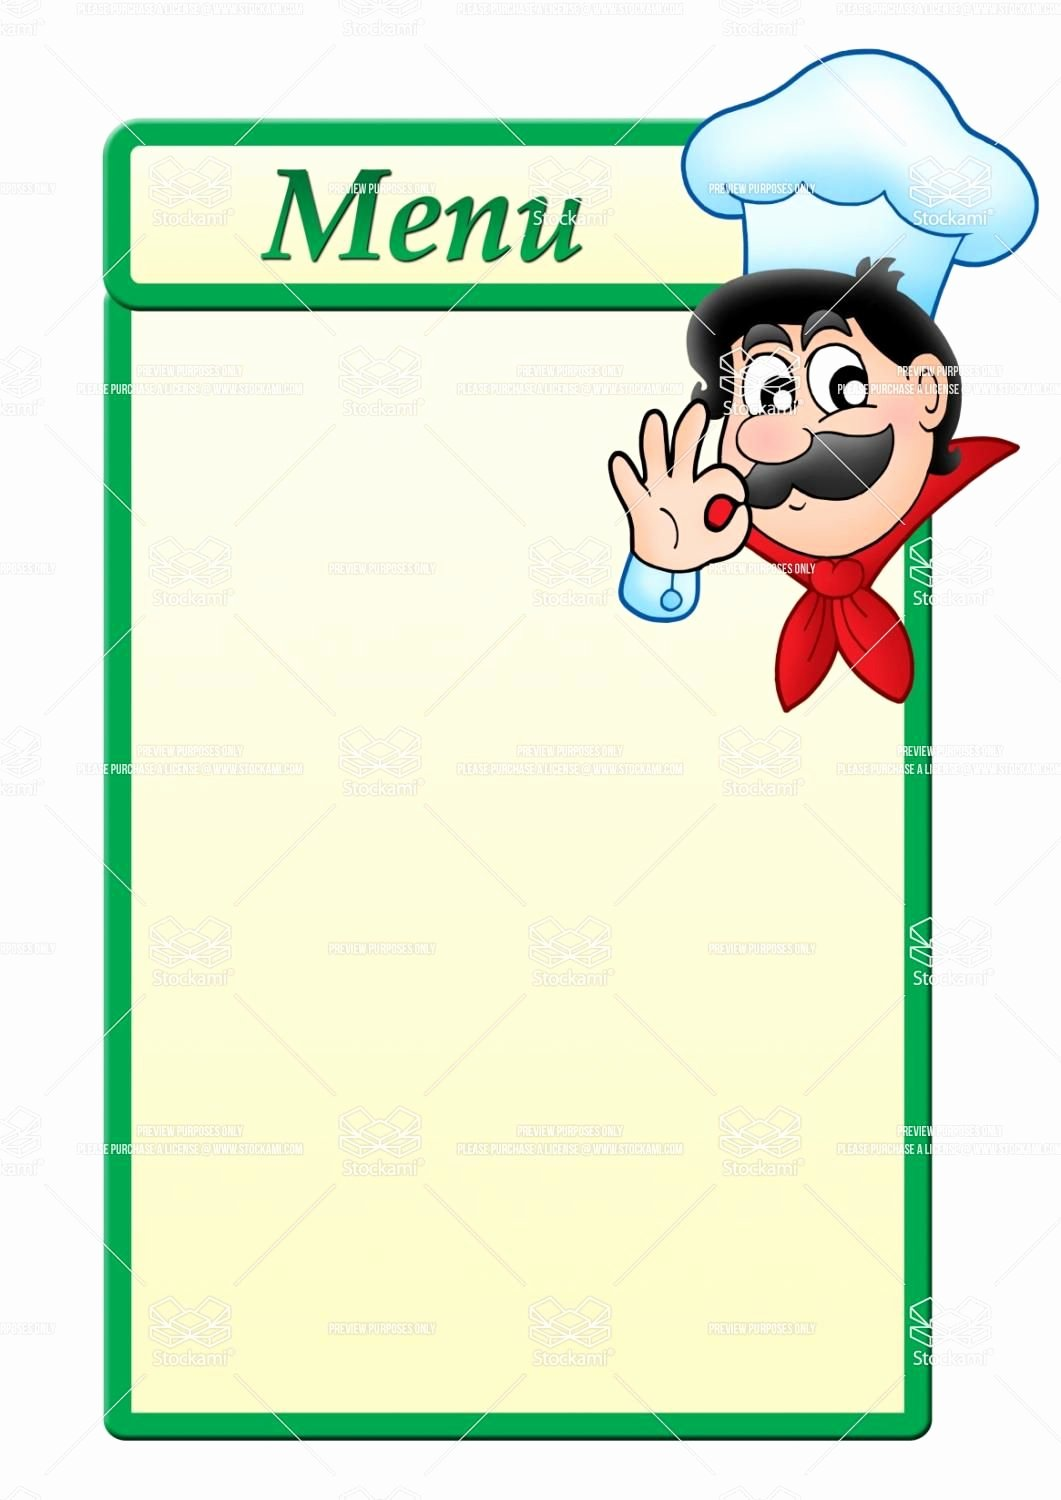 Free Kids Menu Template Elegant Stock Image Menu Template with Cartoon Chef 1 061